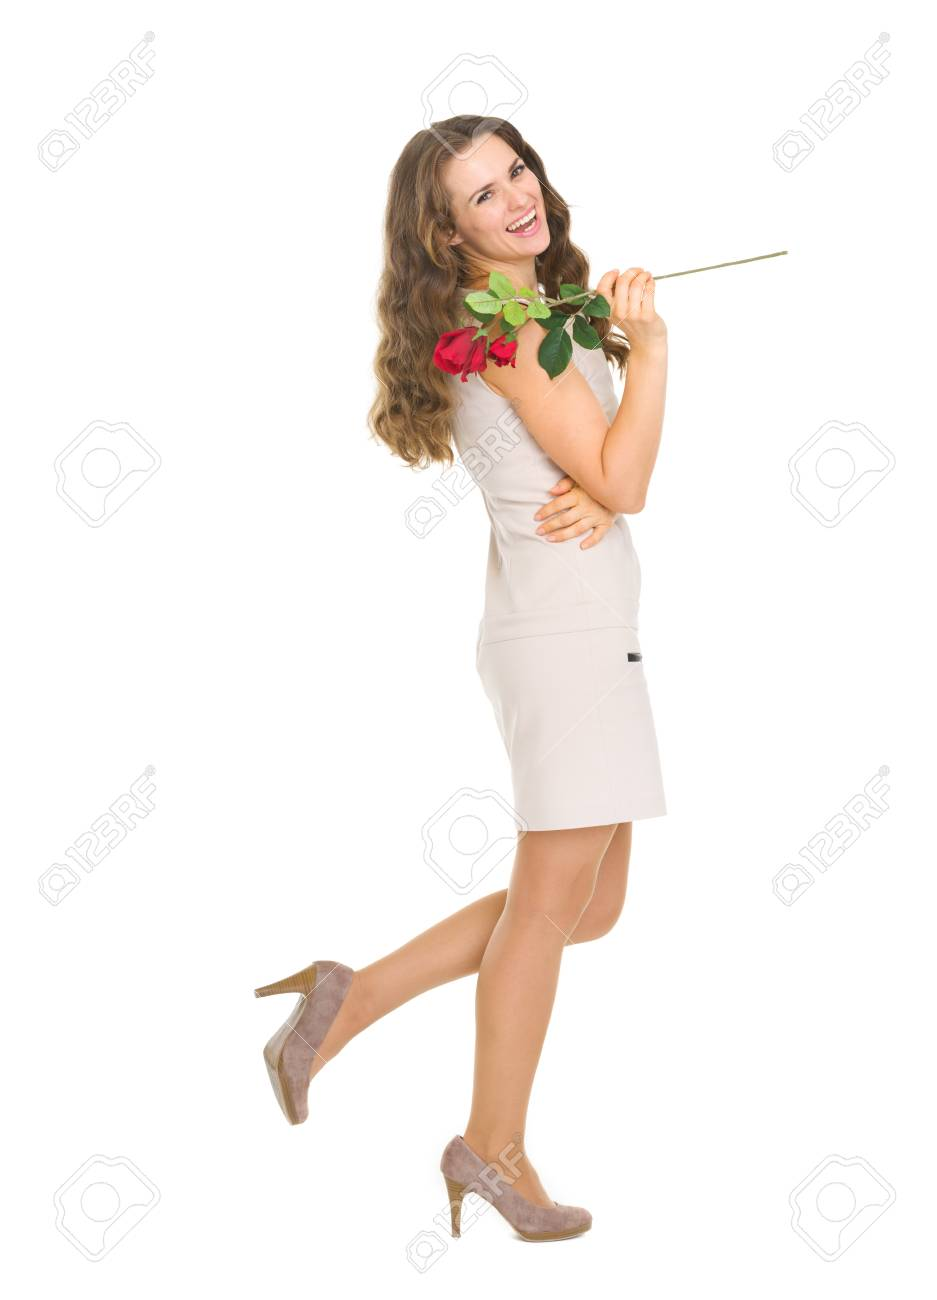 Full length portrait of happy young woman with red rose Stock Photo - 17417826